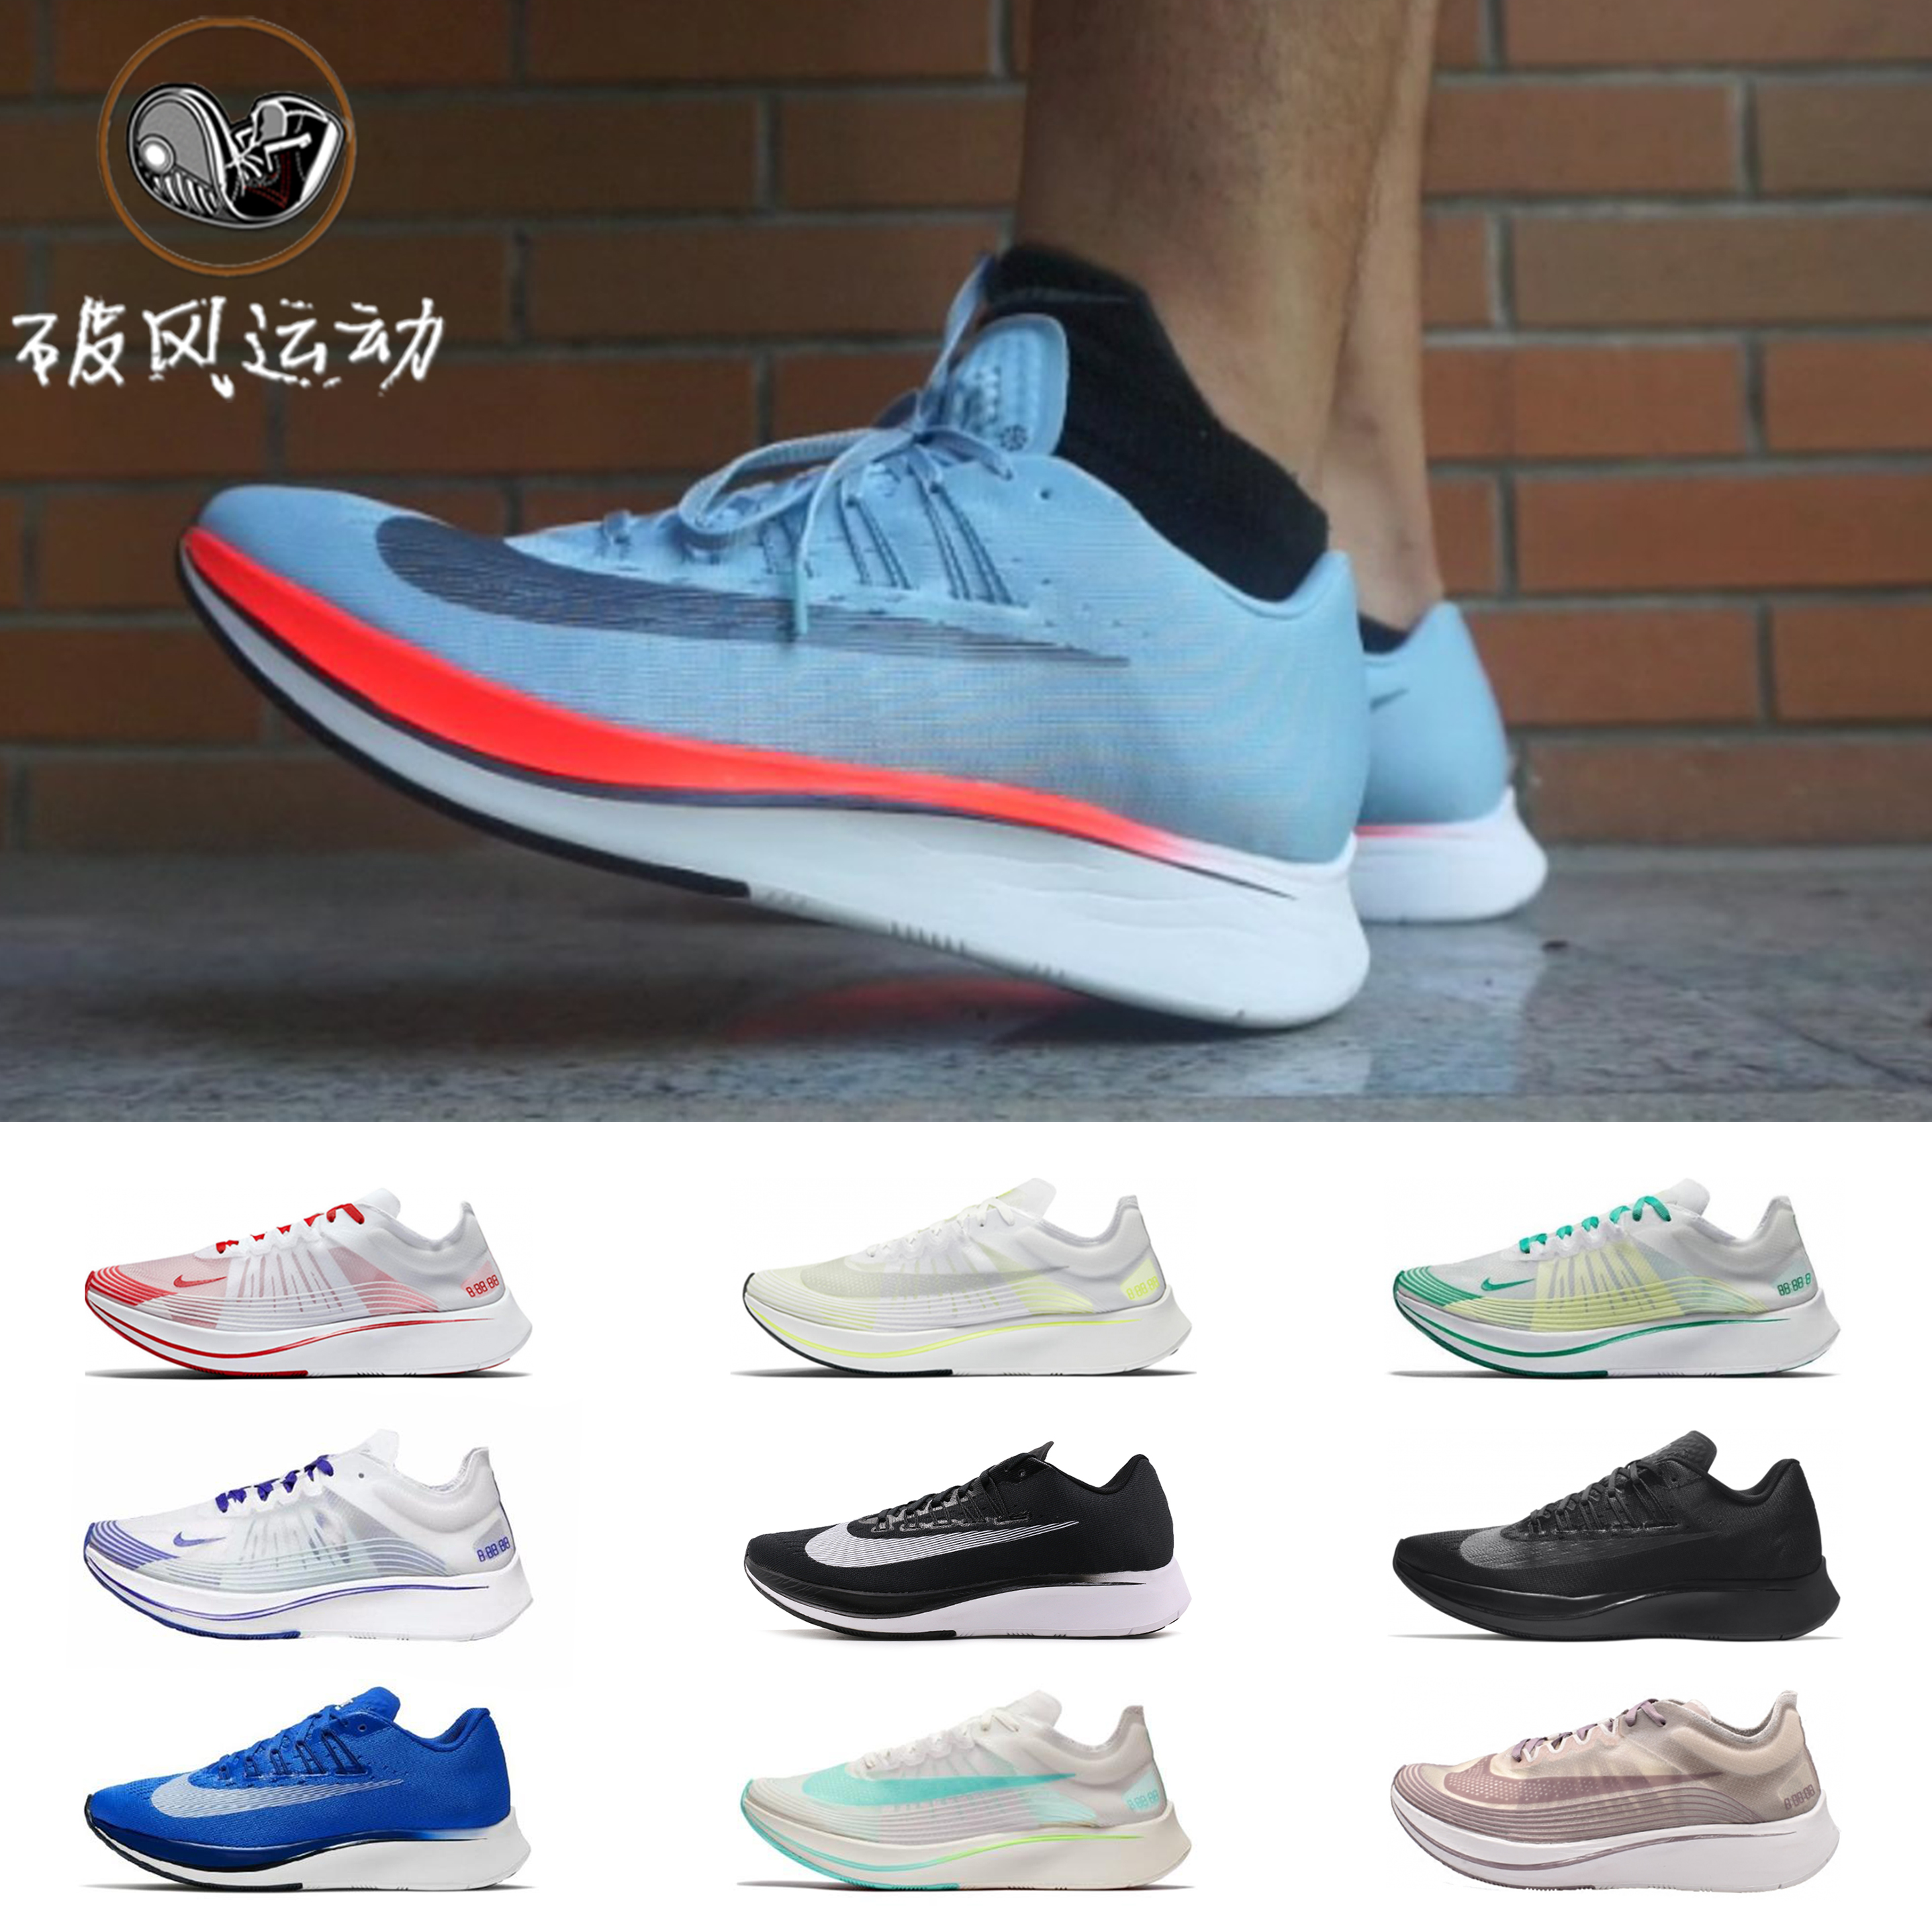 8553a20cbb939 NIKE ZOOM FLY SP First color matching Ice blue Limited 4% Marathon running  shoes 880848